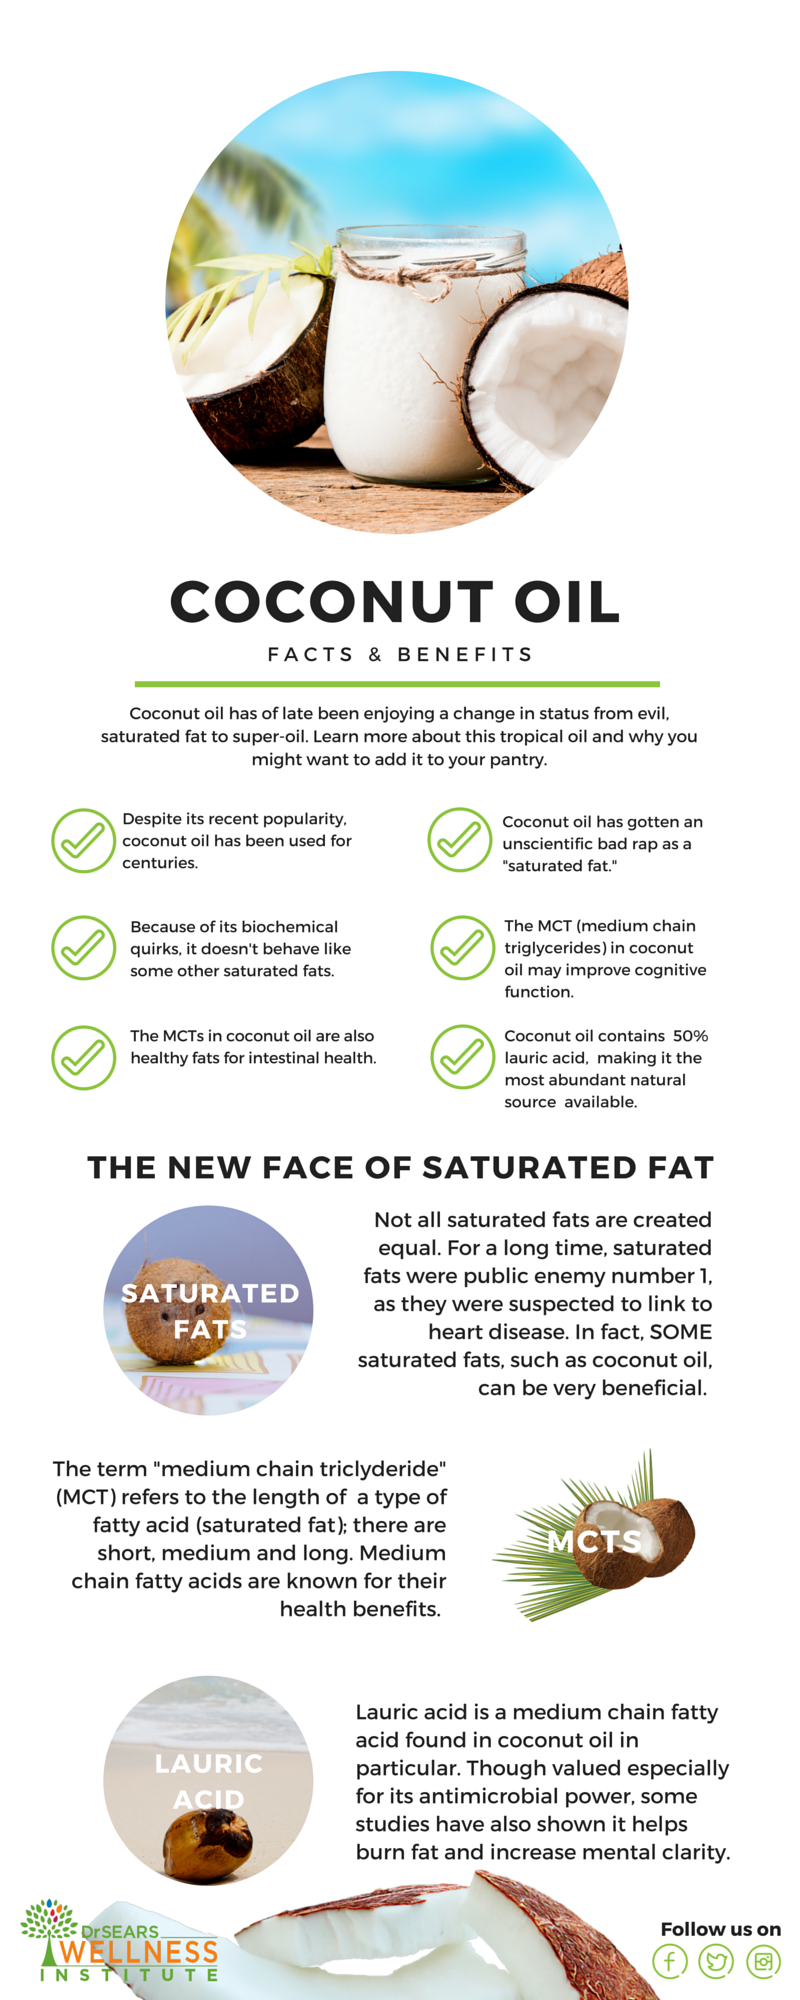 Coconut Oil: Facts and Benefits